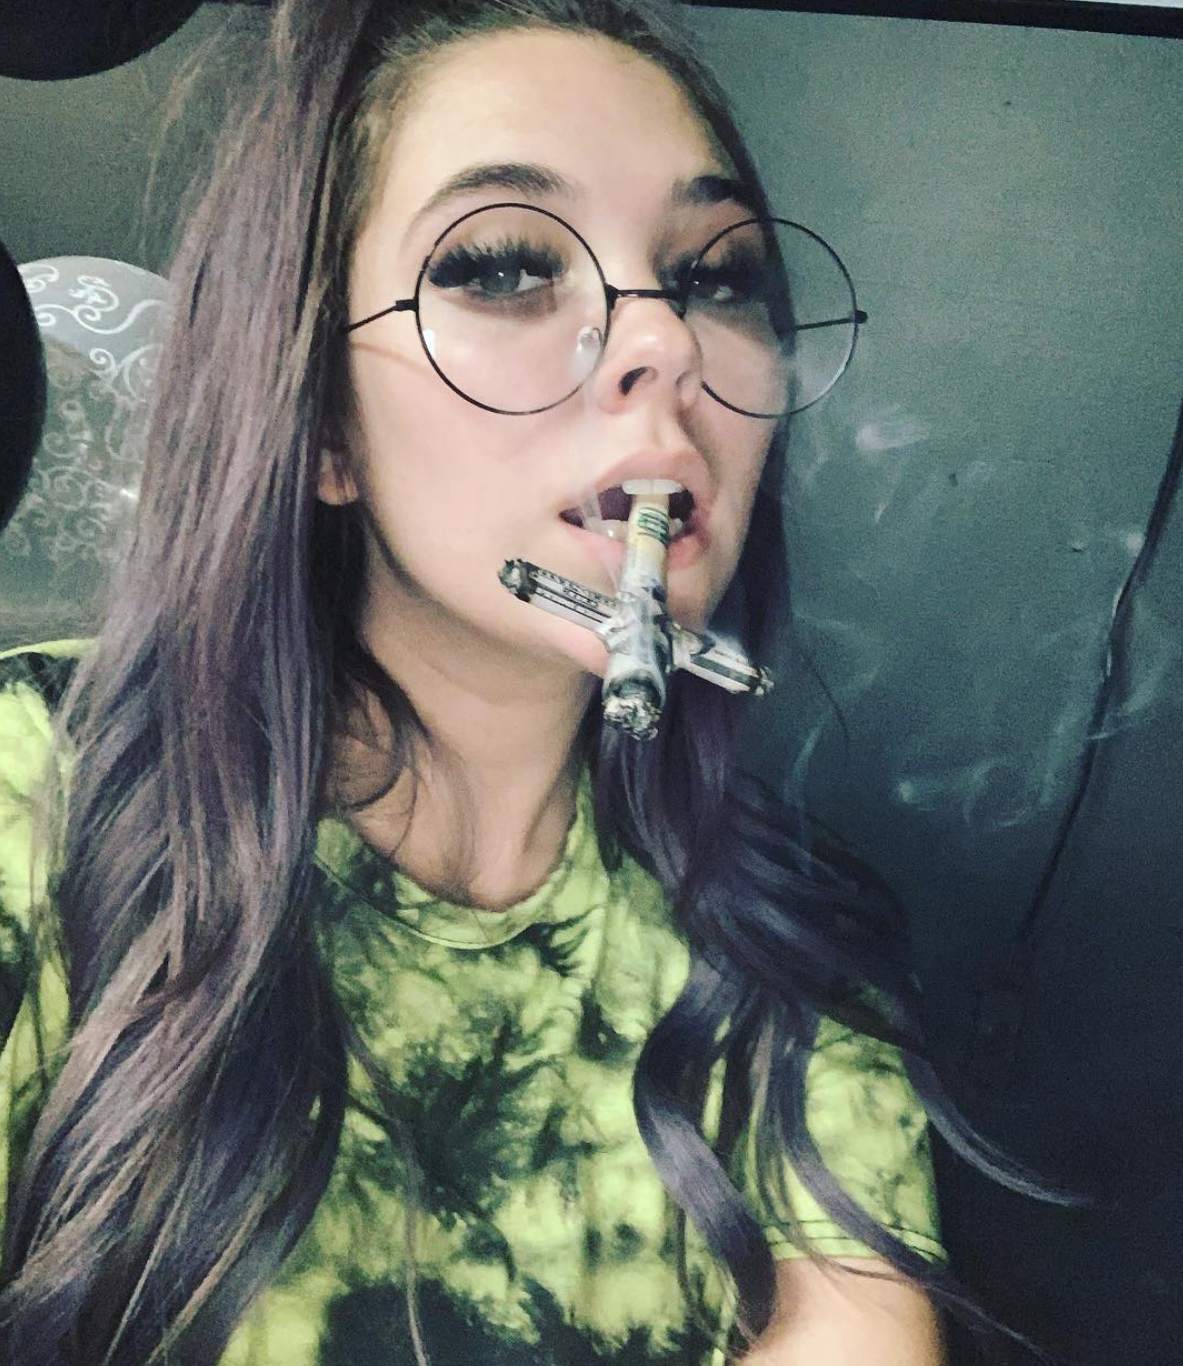 Medicated Marley is a top cannabis influencer